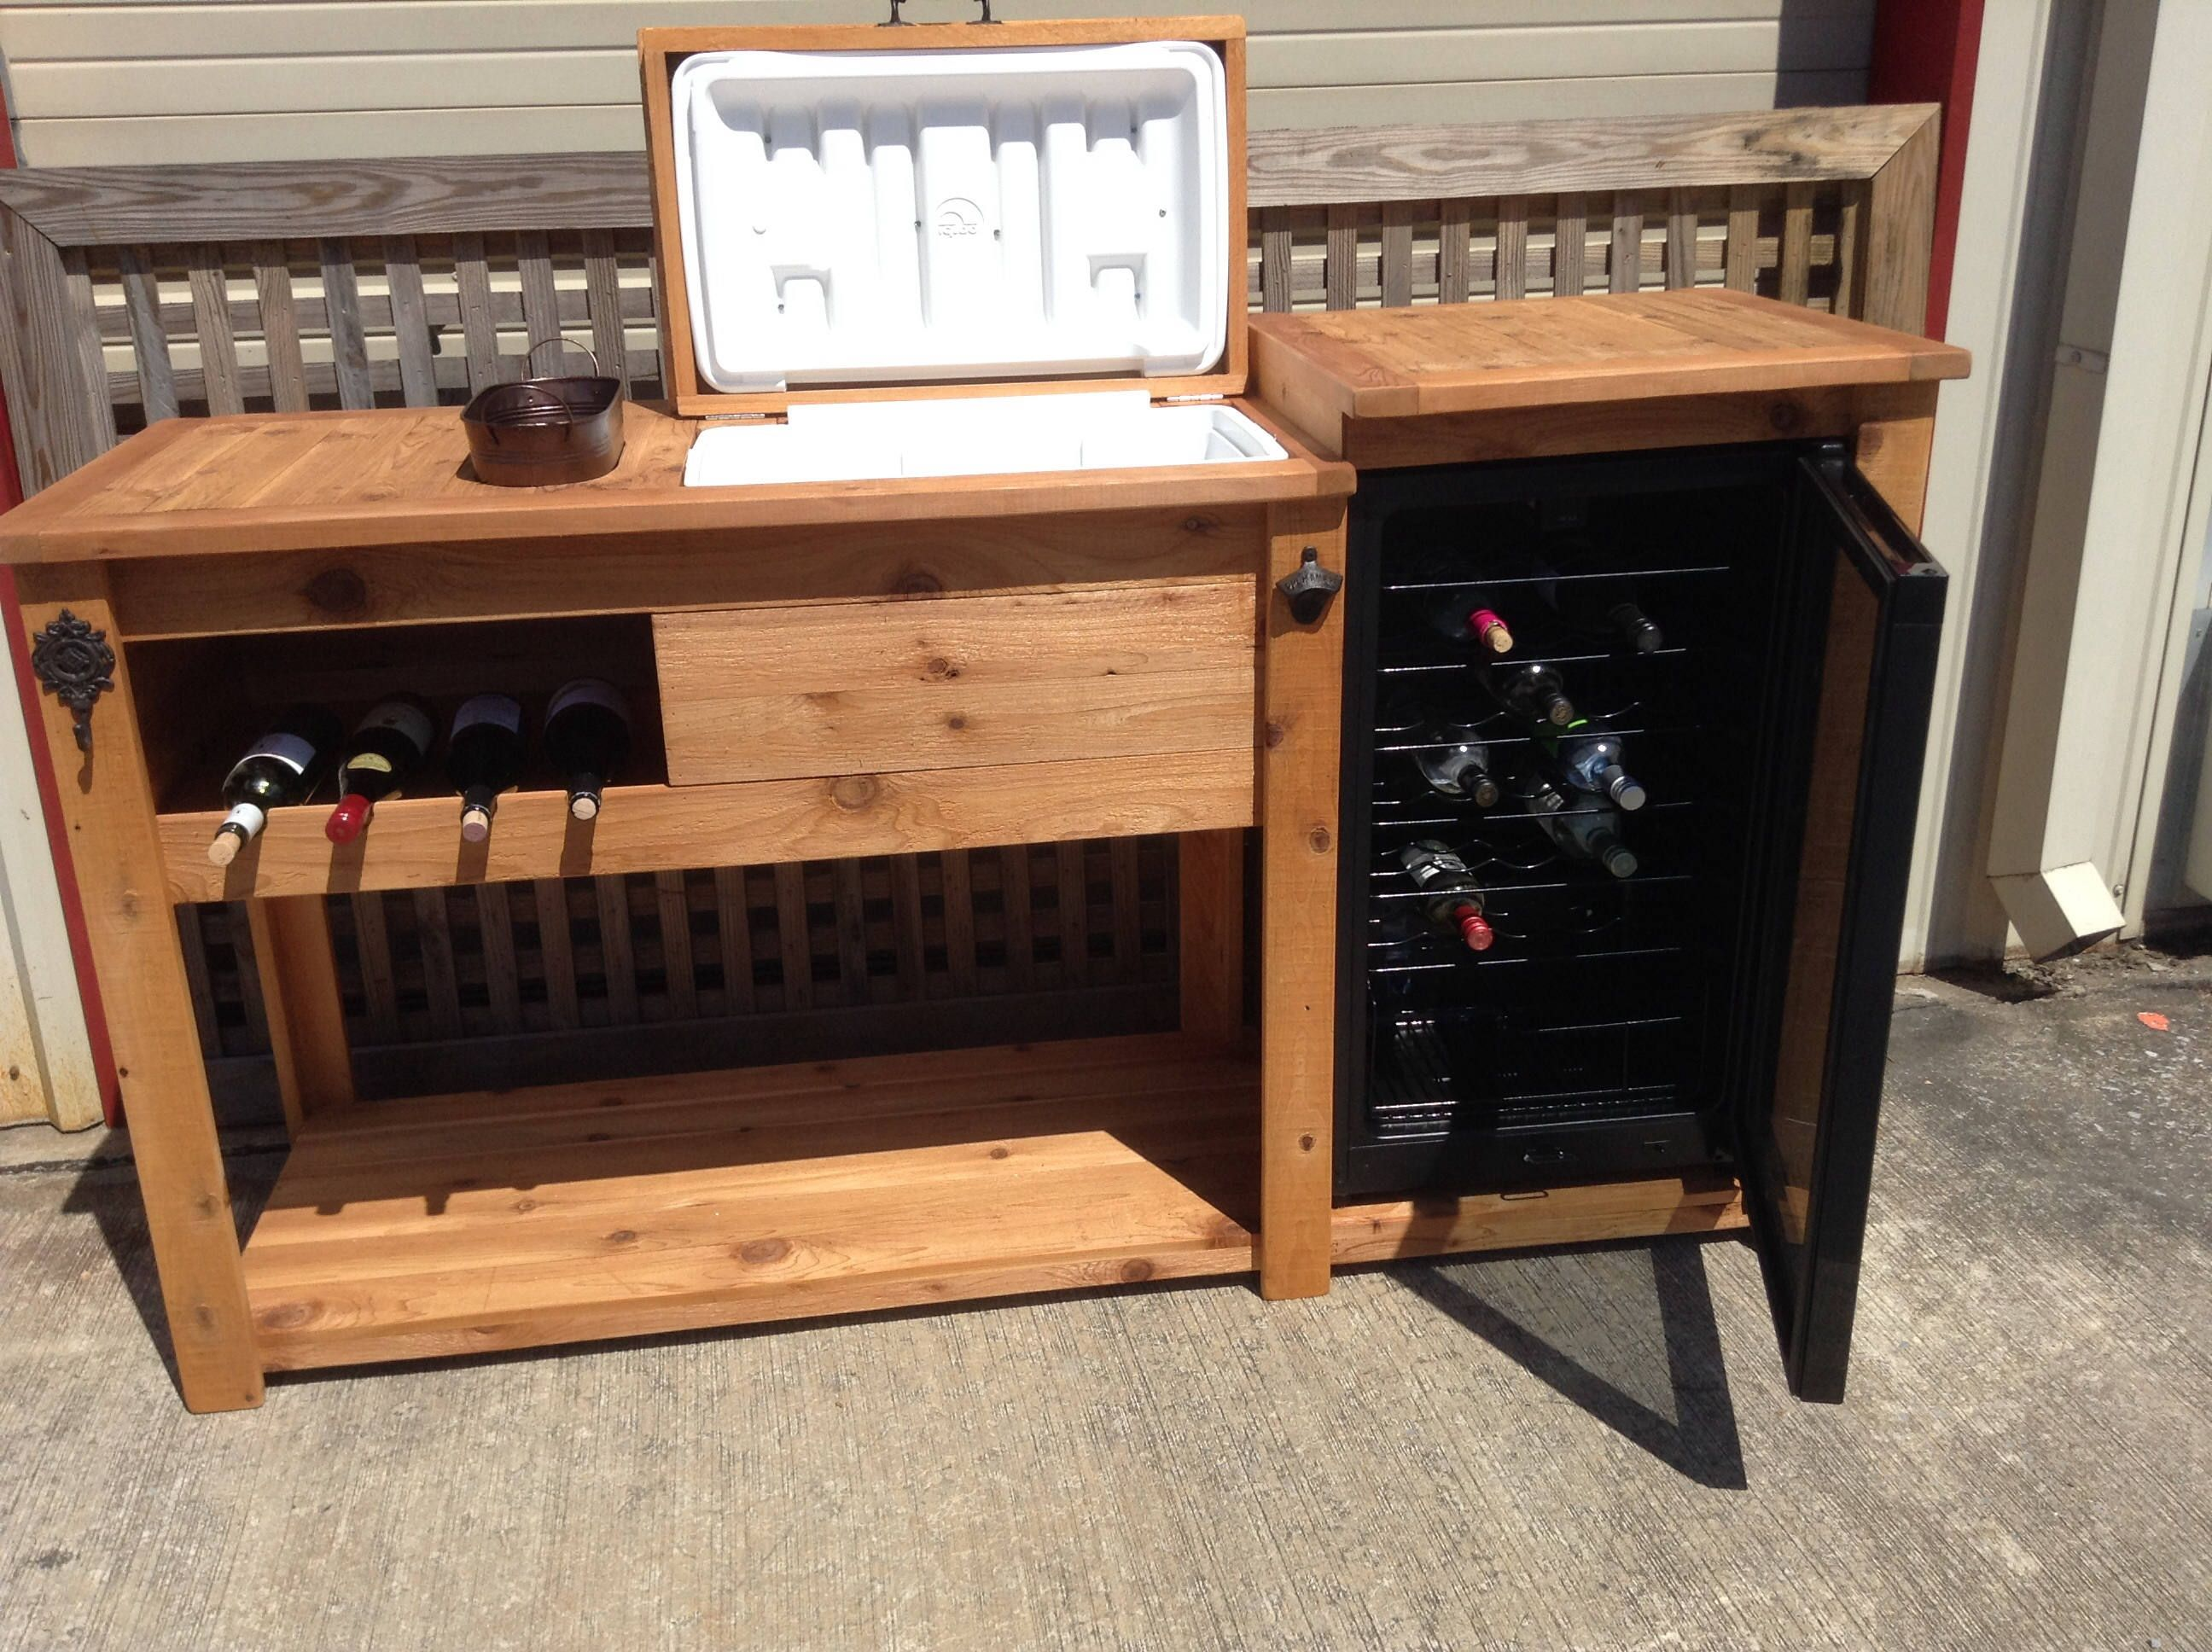 Outdoor Rustic Wooden Cooler Bar Serving Or Console Table Bar Cart Or Mini Fridge Bar Cabinet And Patio Furniture Outdoor Patio Bar Wooden Cooler Outdoor Mini Fridge